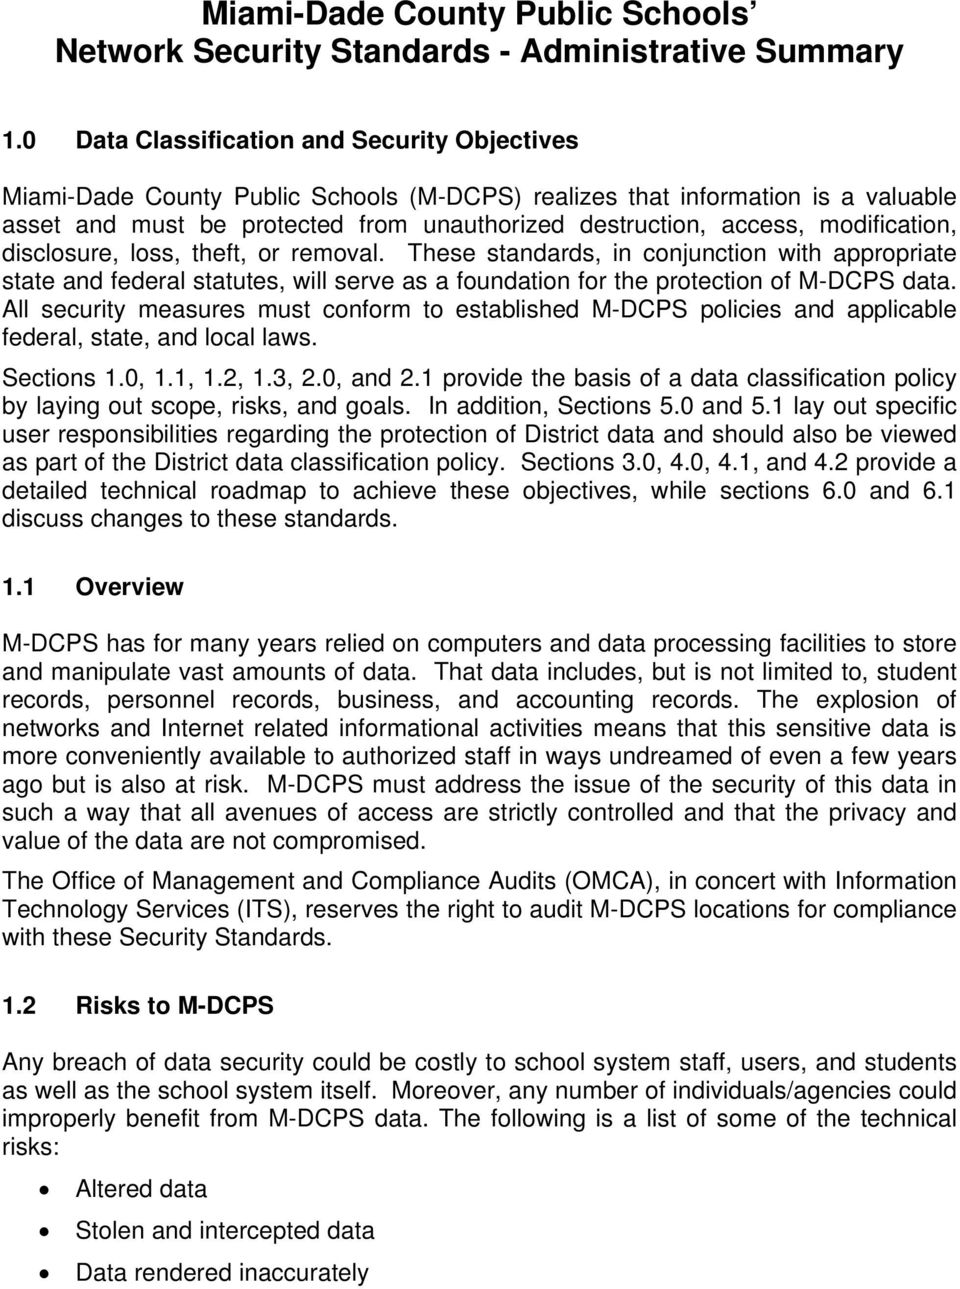 modification, disclosure, loss, theft, or removal. These standards, in conjunction with appropriate state and federal statutes, will serve as a foundation for the protection of M-DCPS data.